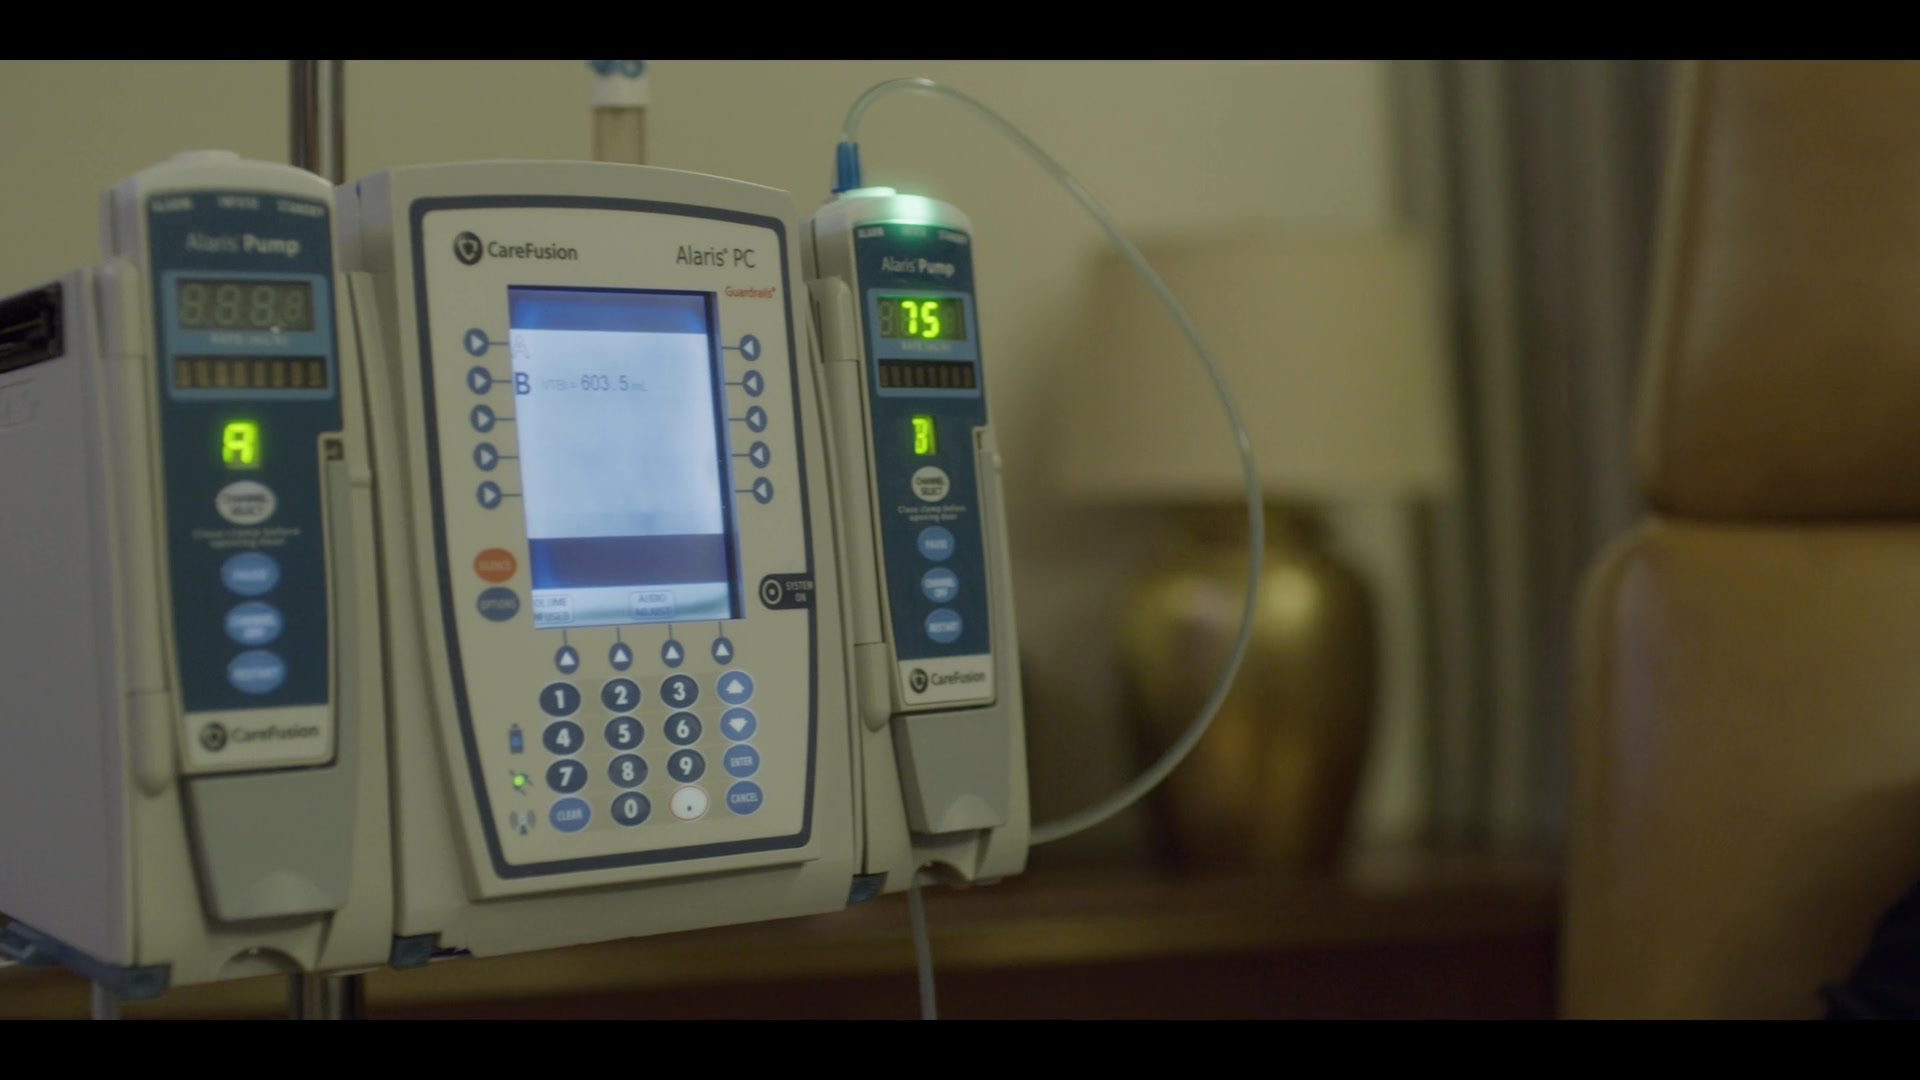 Carefusion Alaris Pc Pump In House Of Cards Season 6 Episode 7